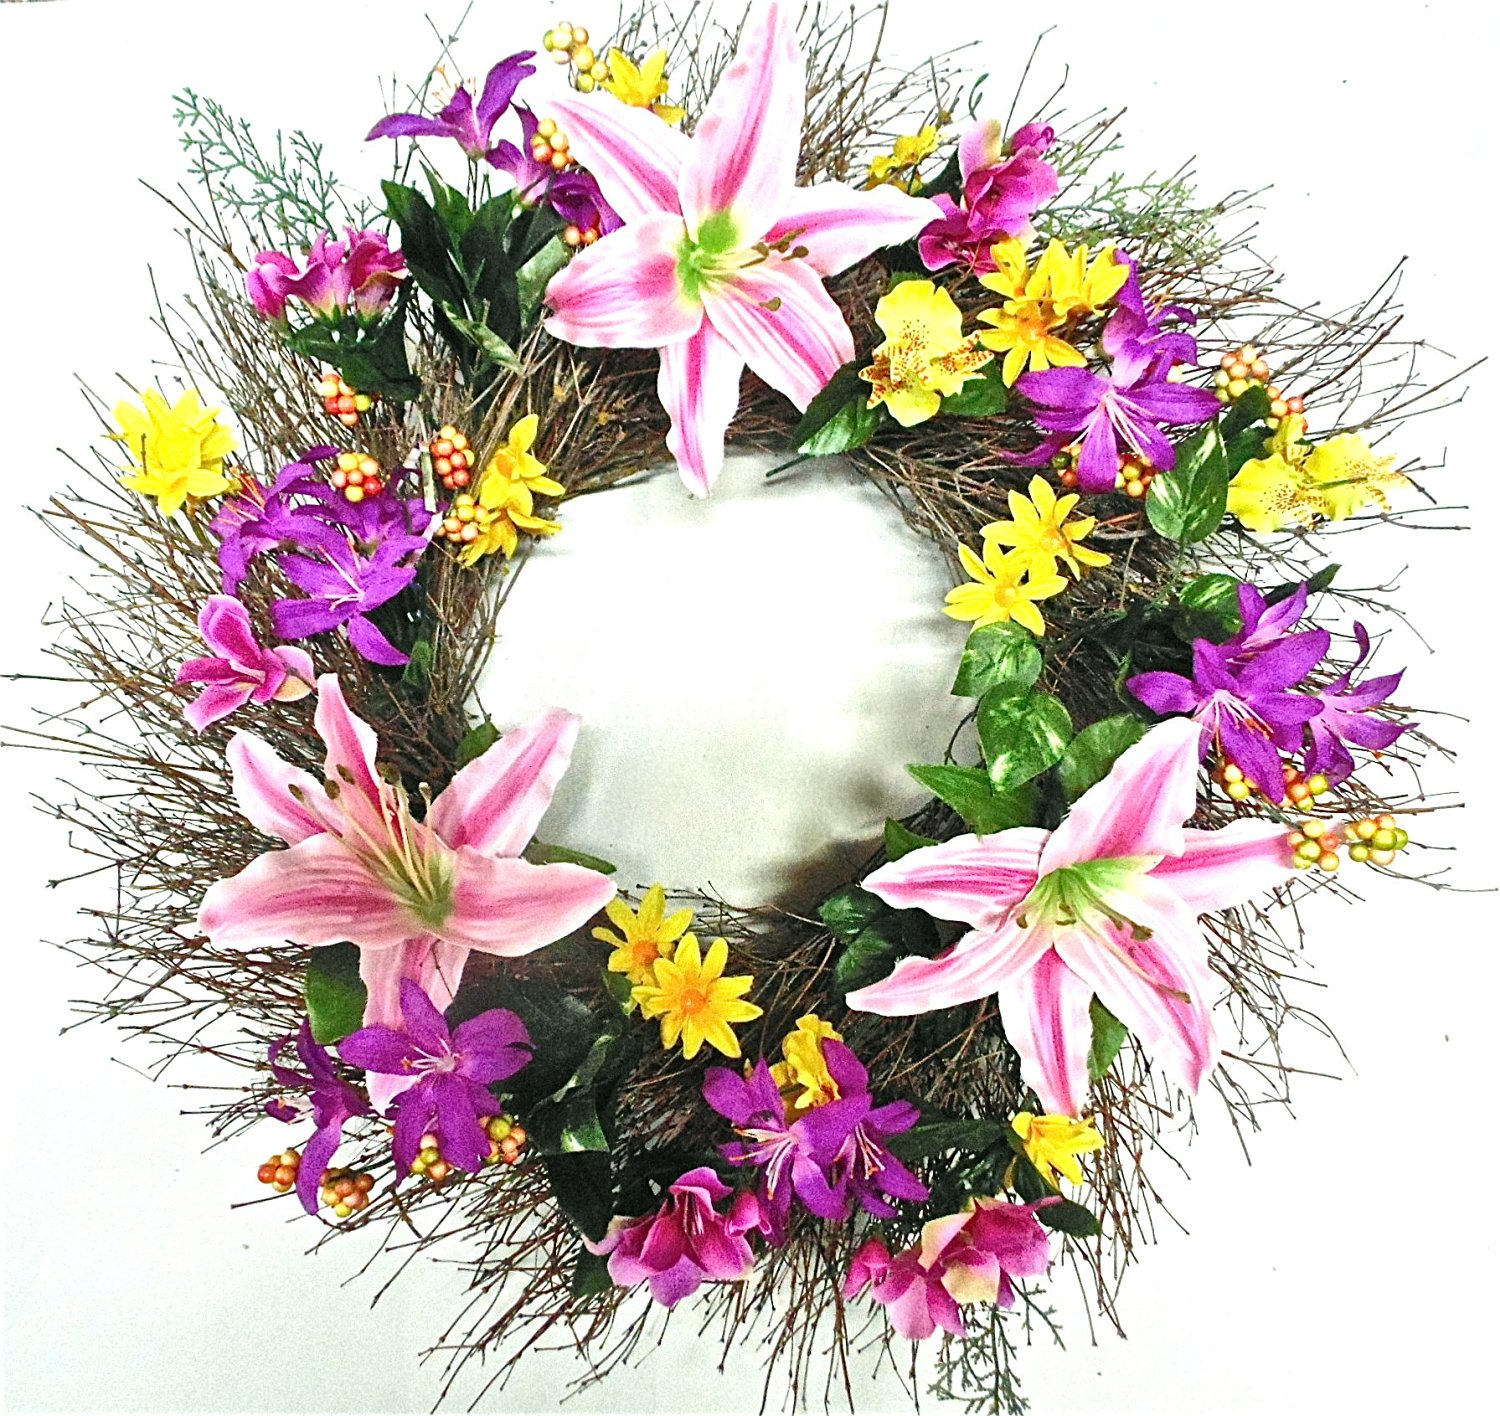 house of stunning image for popular semi wreaths trend unbelievable decor spring wreath collection diy clover door front doors concept the and